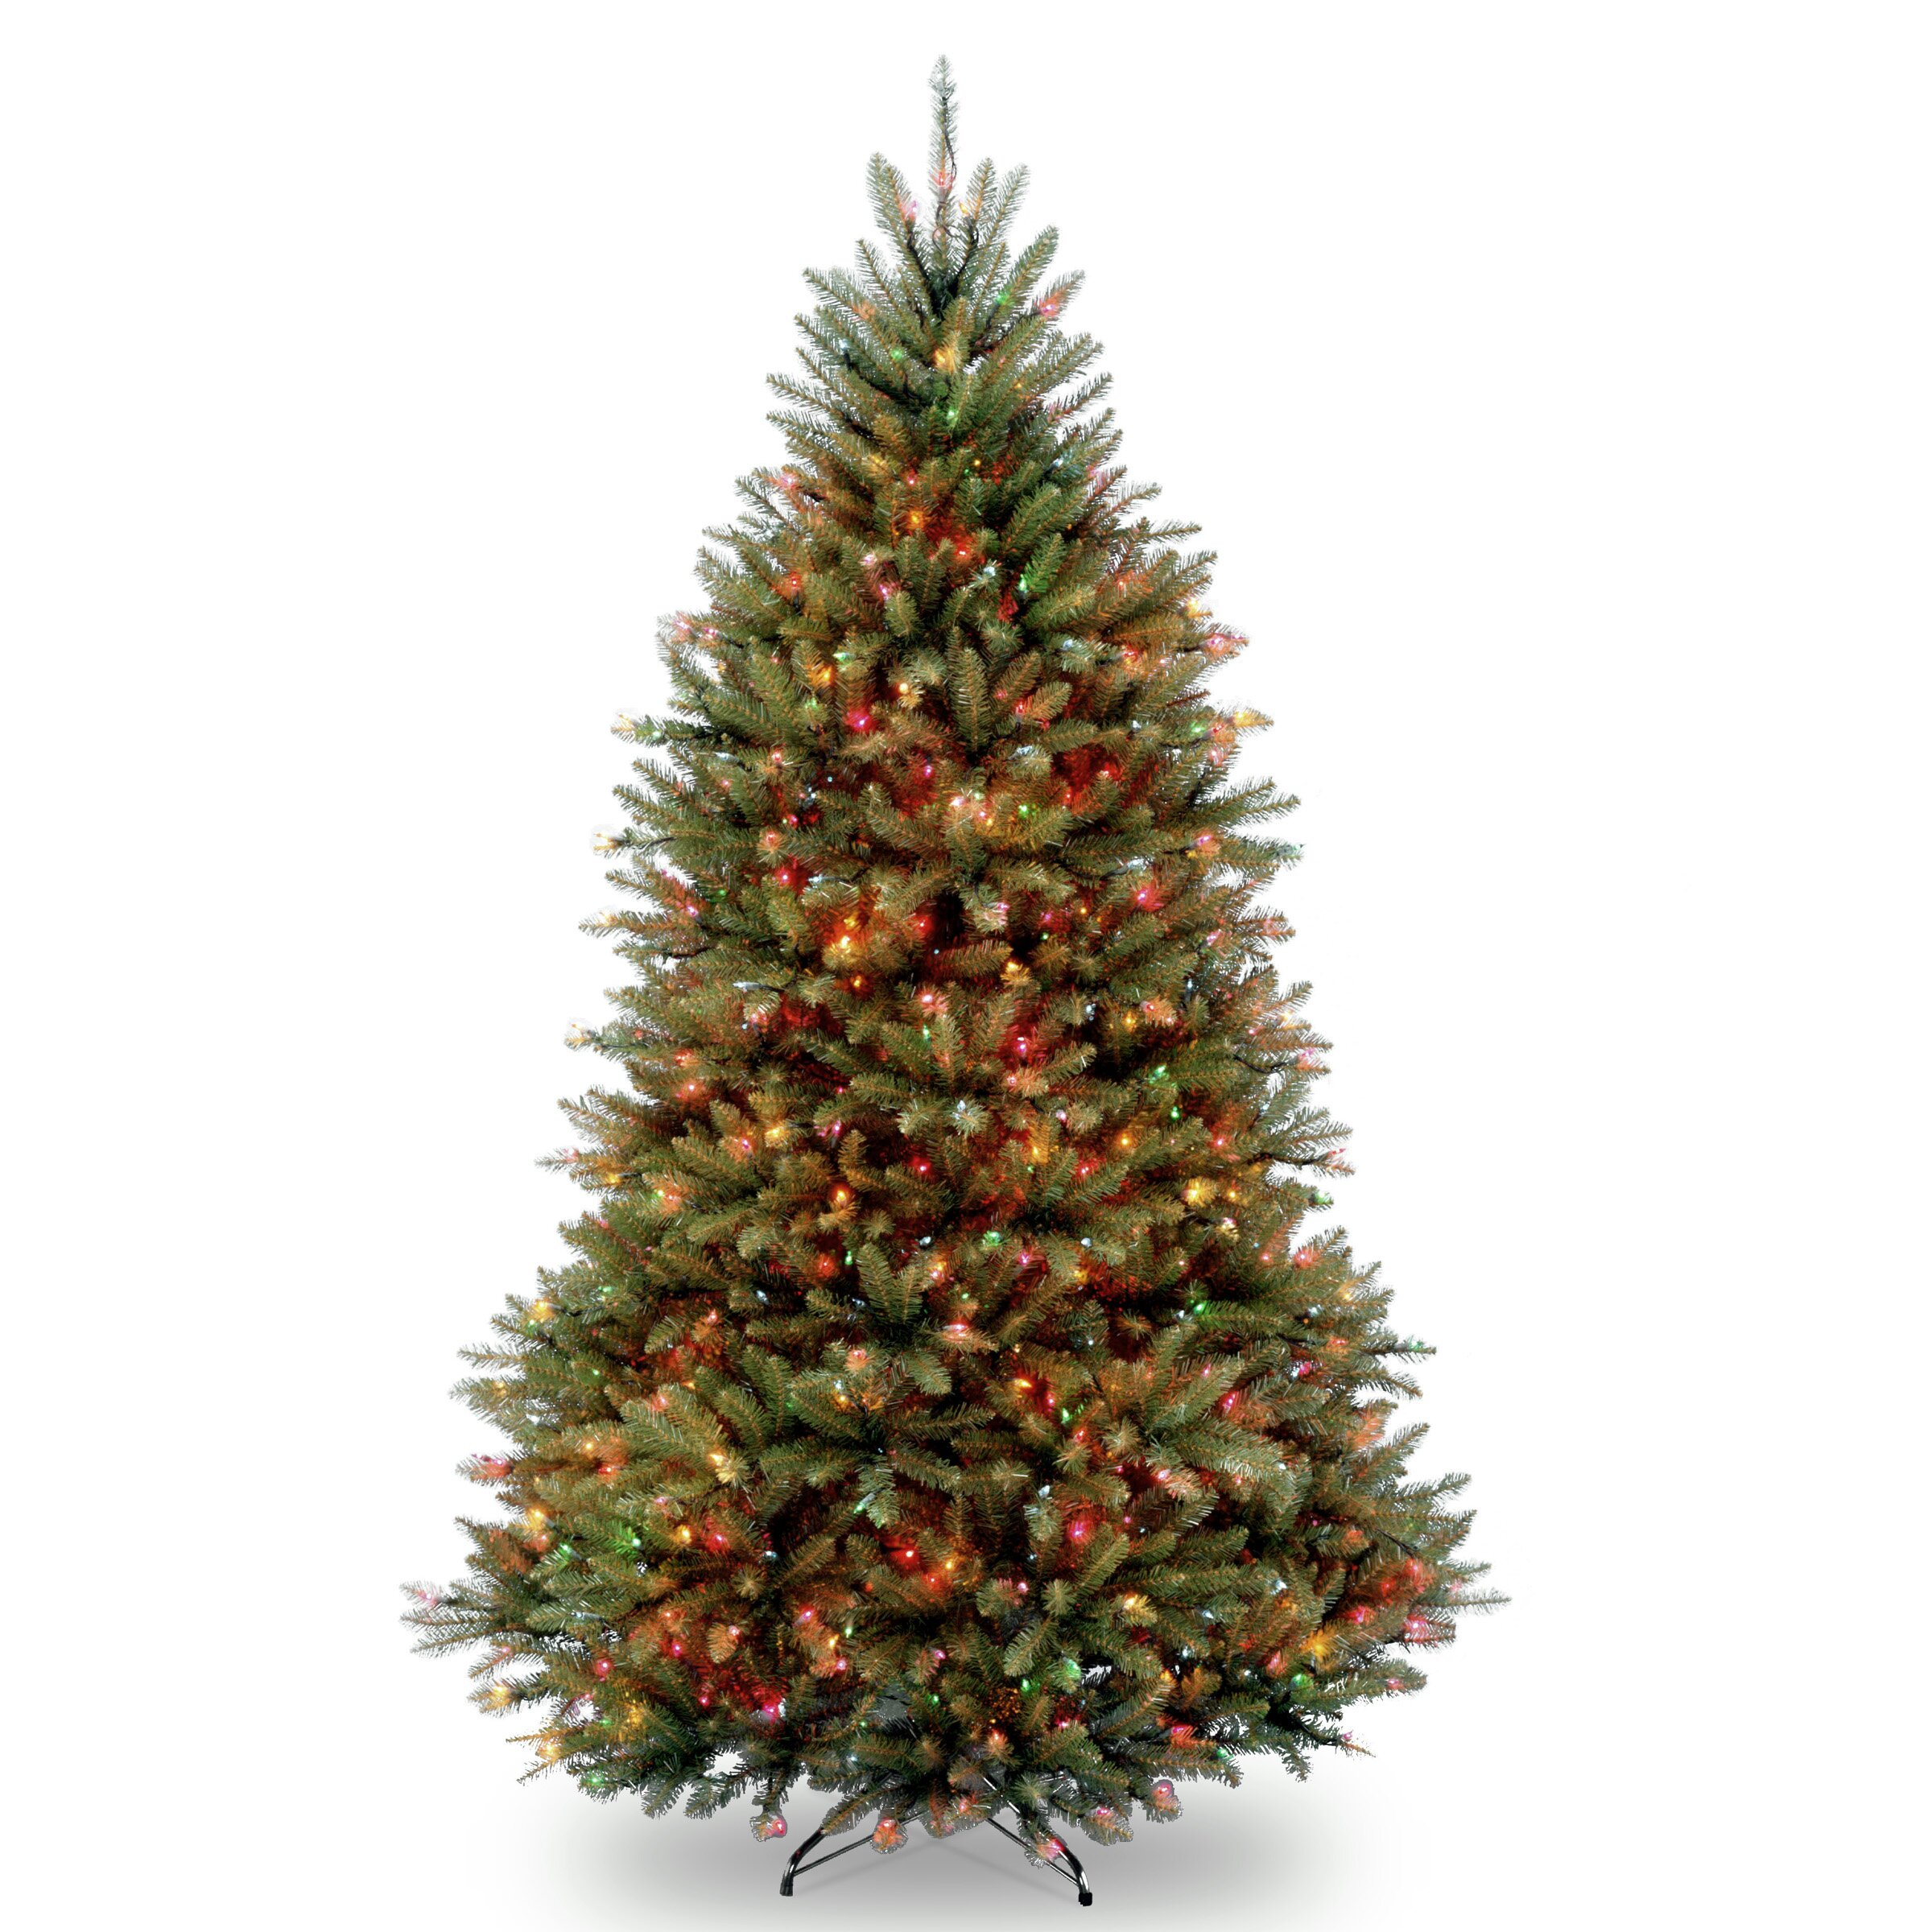 Artificial Christmas Tree Sale Home Depot: National Tree Co. Dunhill Fir 7.5' Hinged Green Artificial